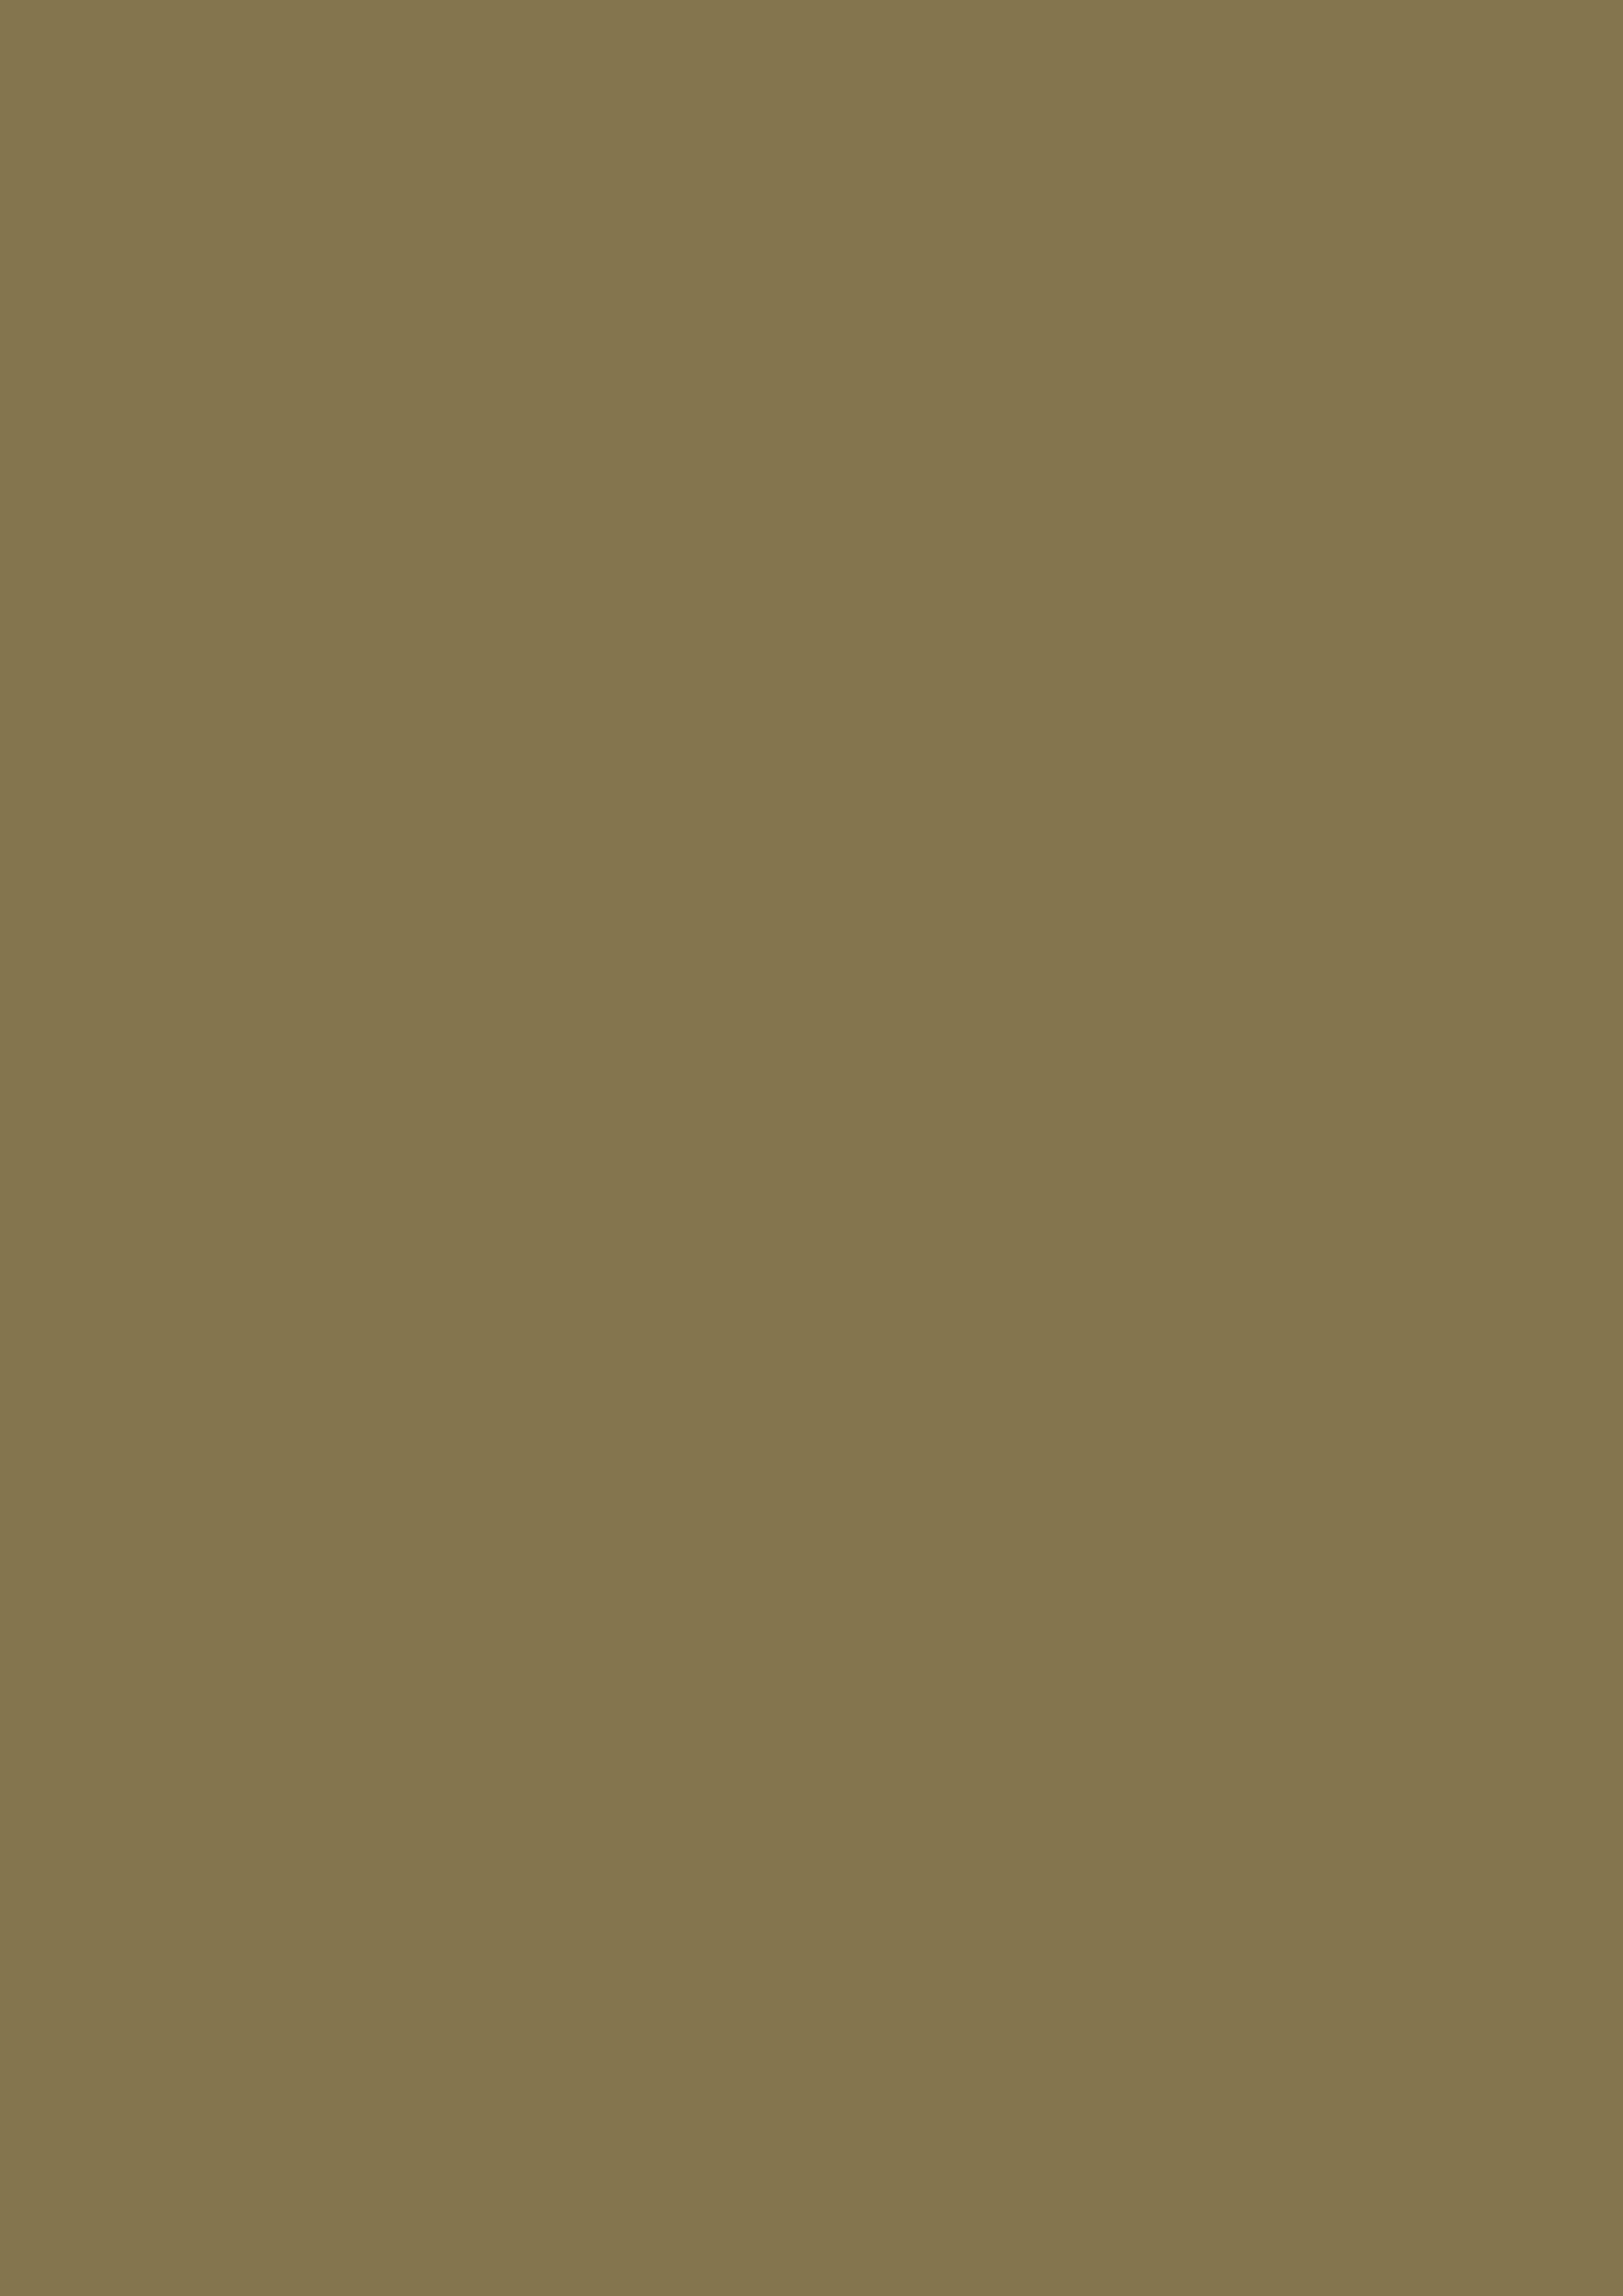 2480x3508 Gold Fusion Solid Color Background